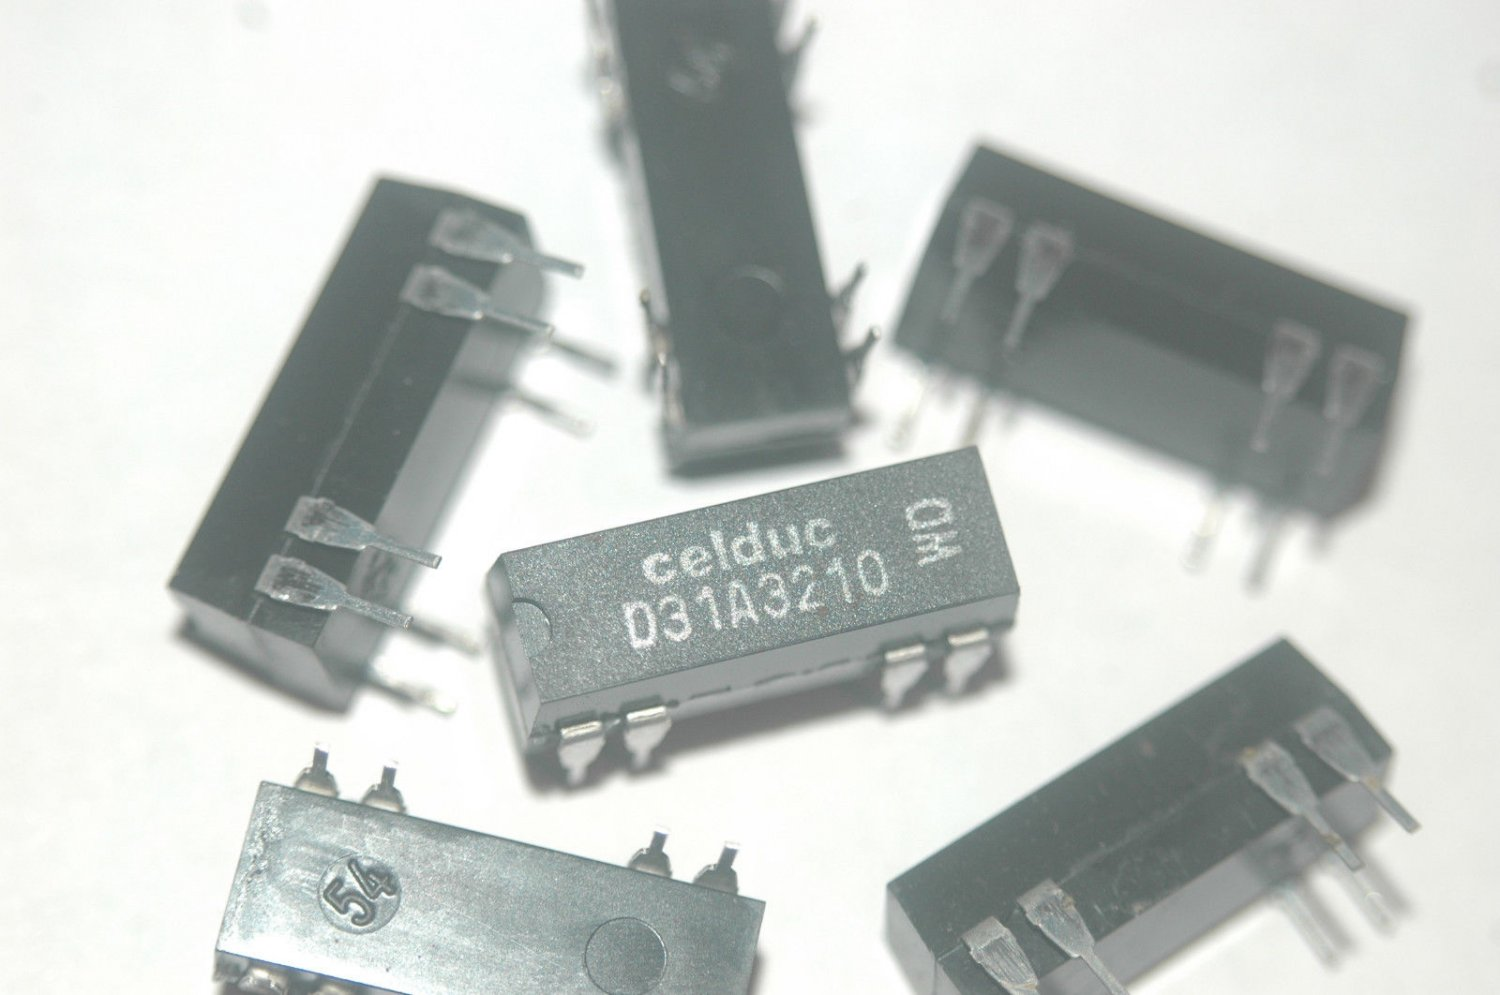 Celduc D31a3210 8 Pin Dip Obsolete Reed Relay New Parts Lot Quantity 10 Solid State